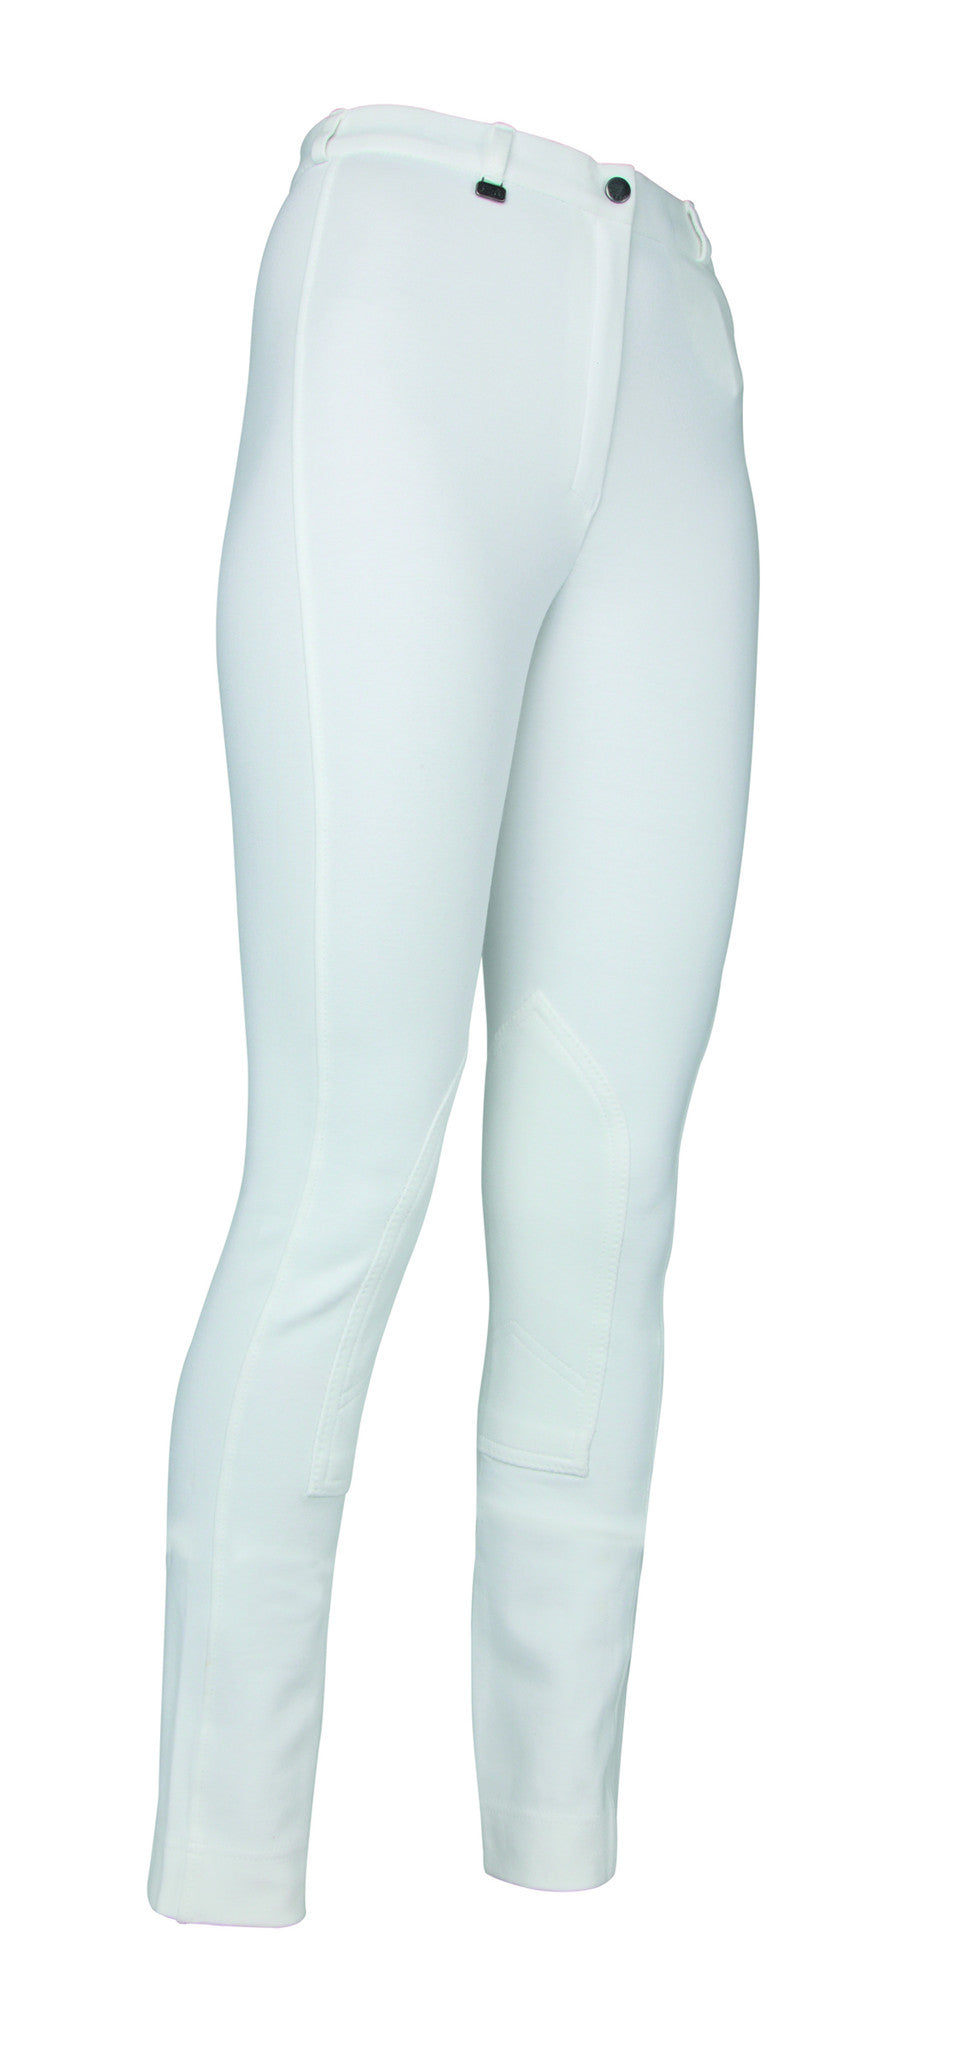 Shires SaddleHugger Jodhpurs - Ladies